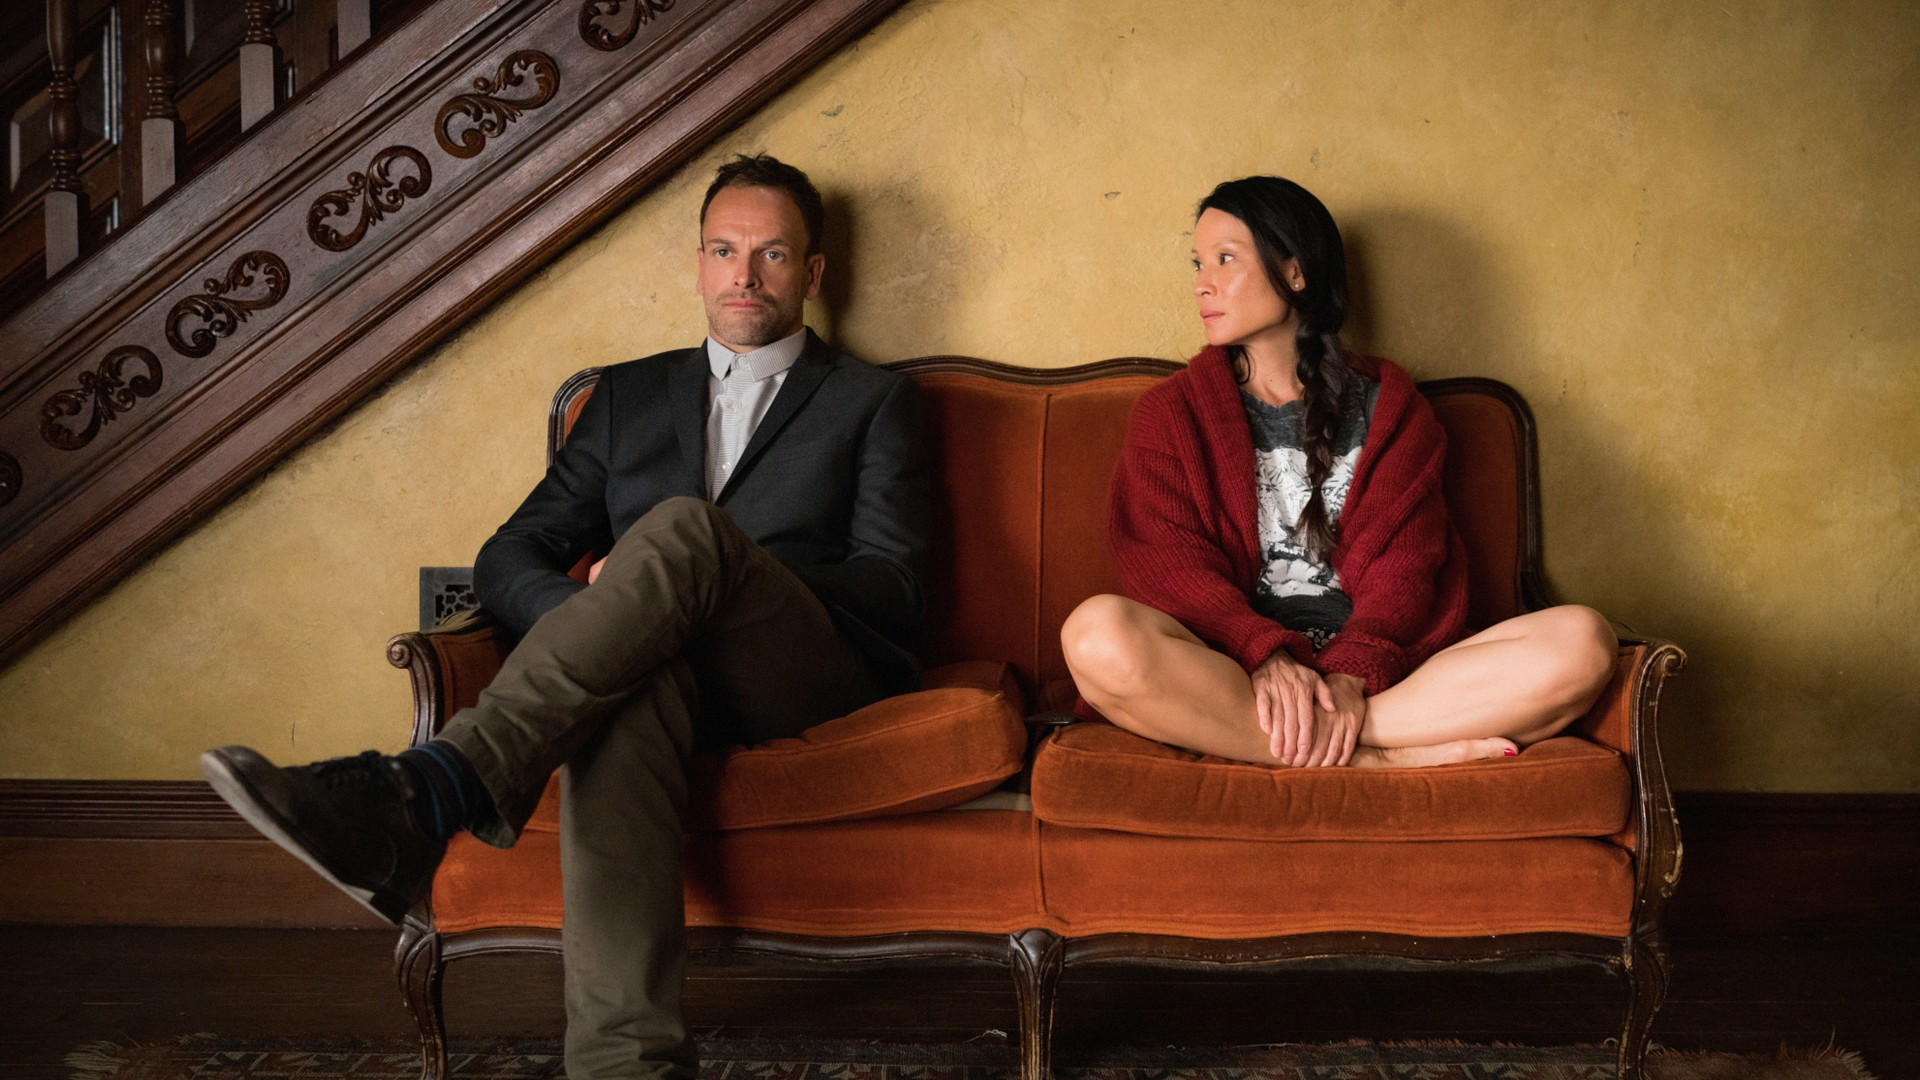 cbs_elementary_504_clean_image_thumb_master